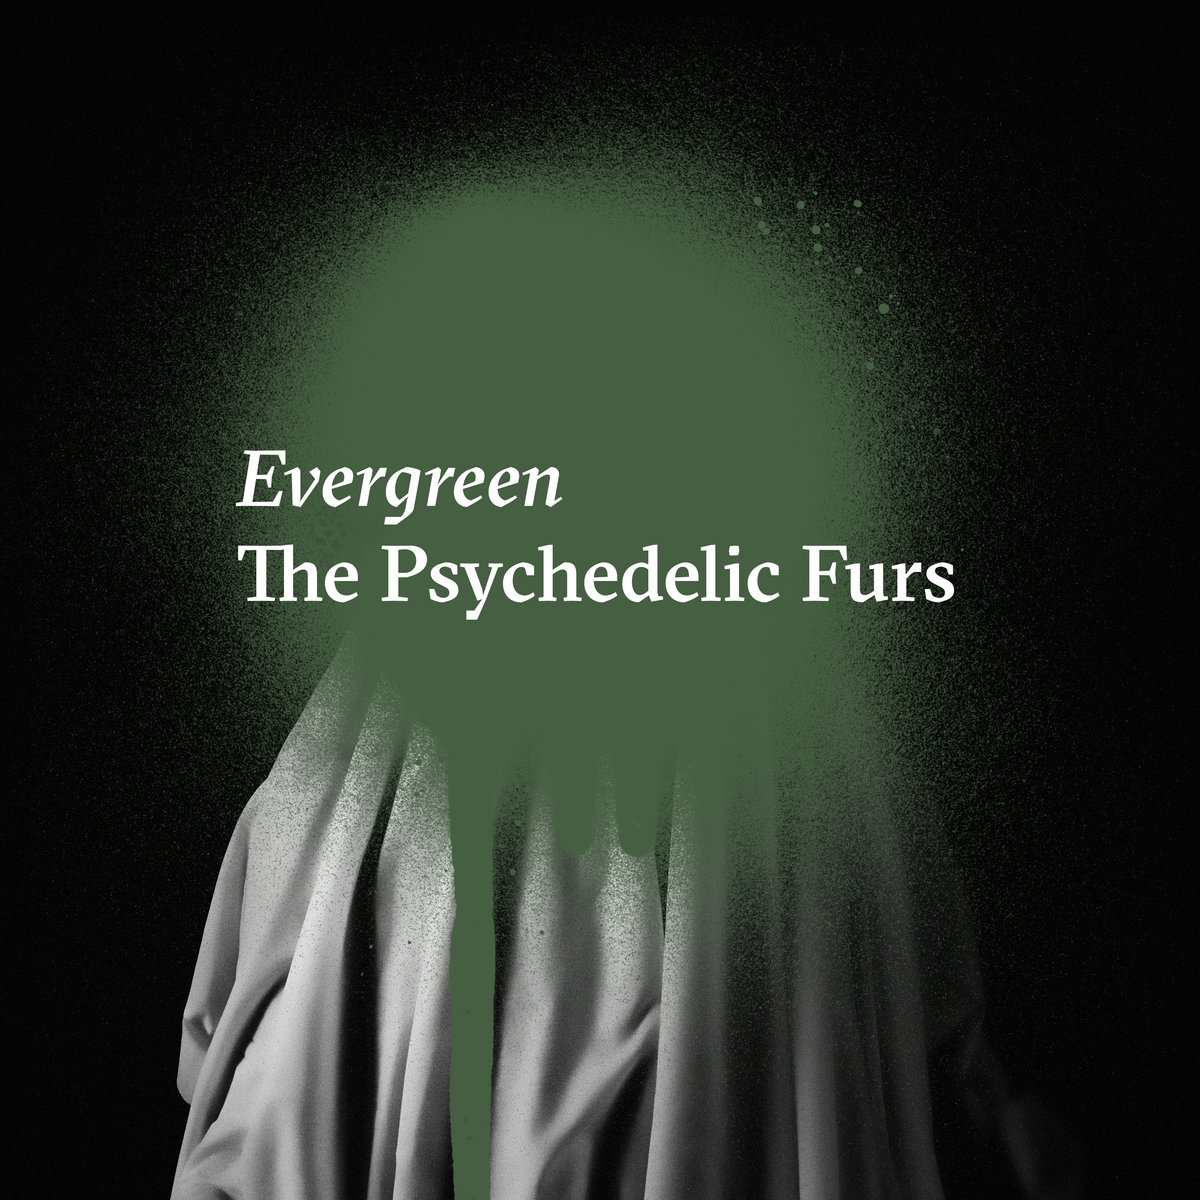 News – The Psychedelic Furs – Evergreen